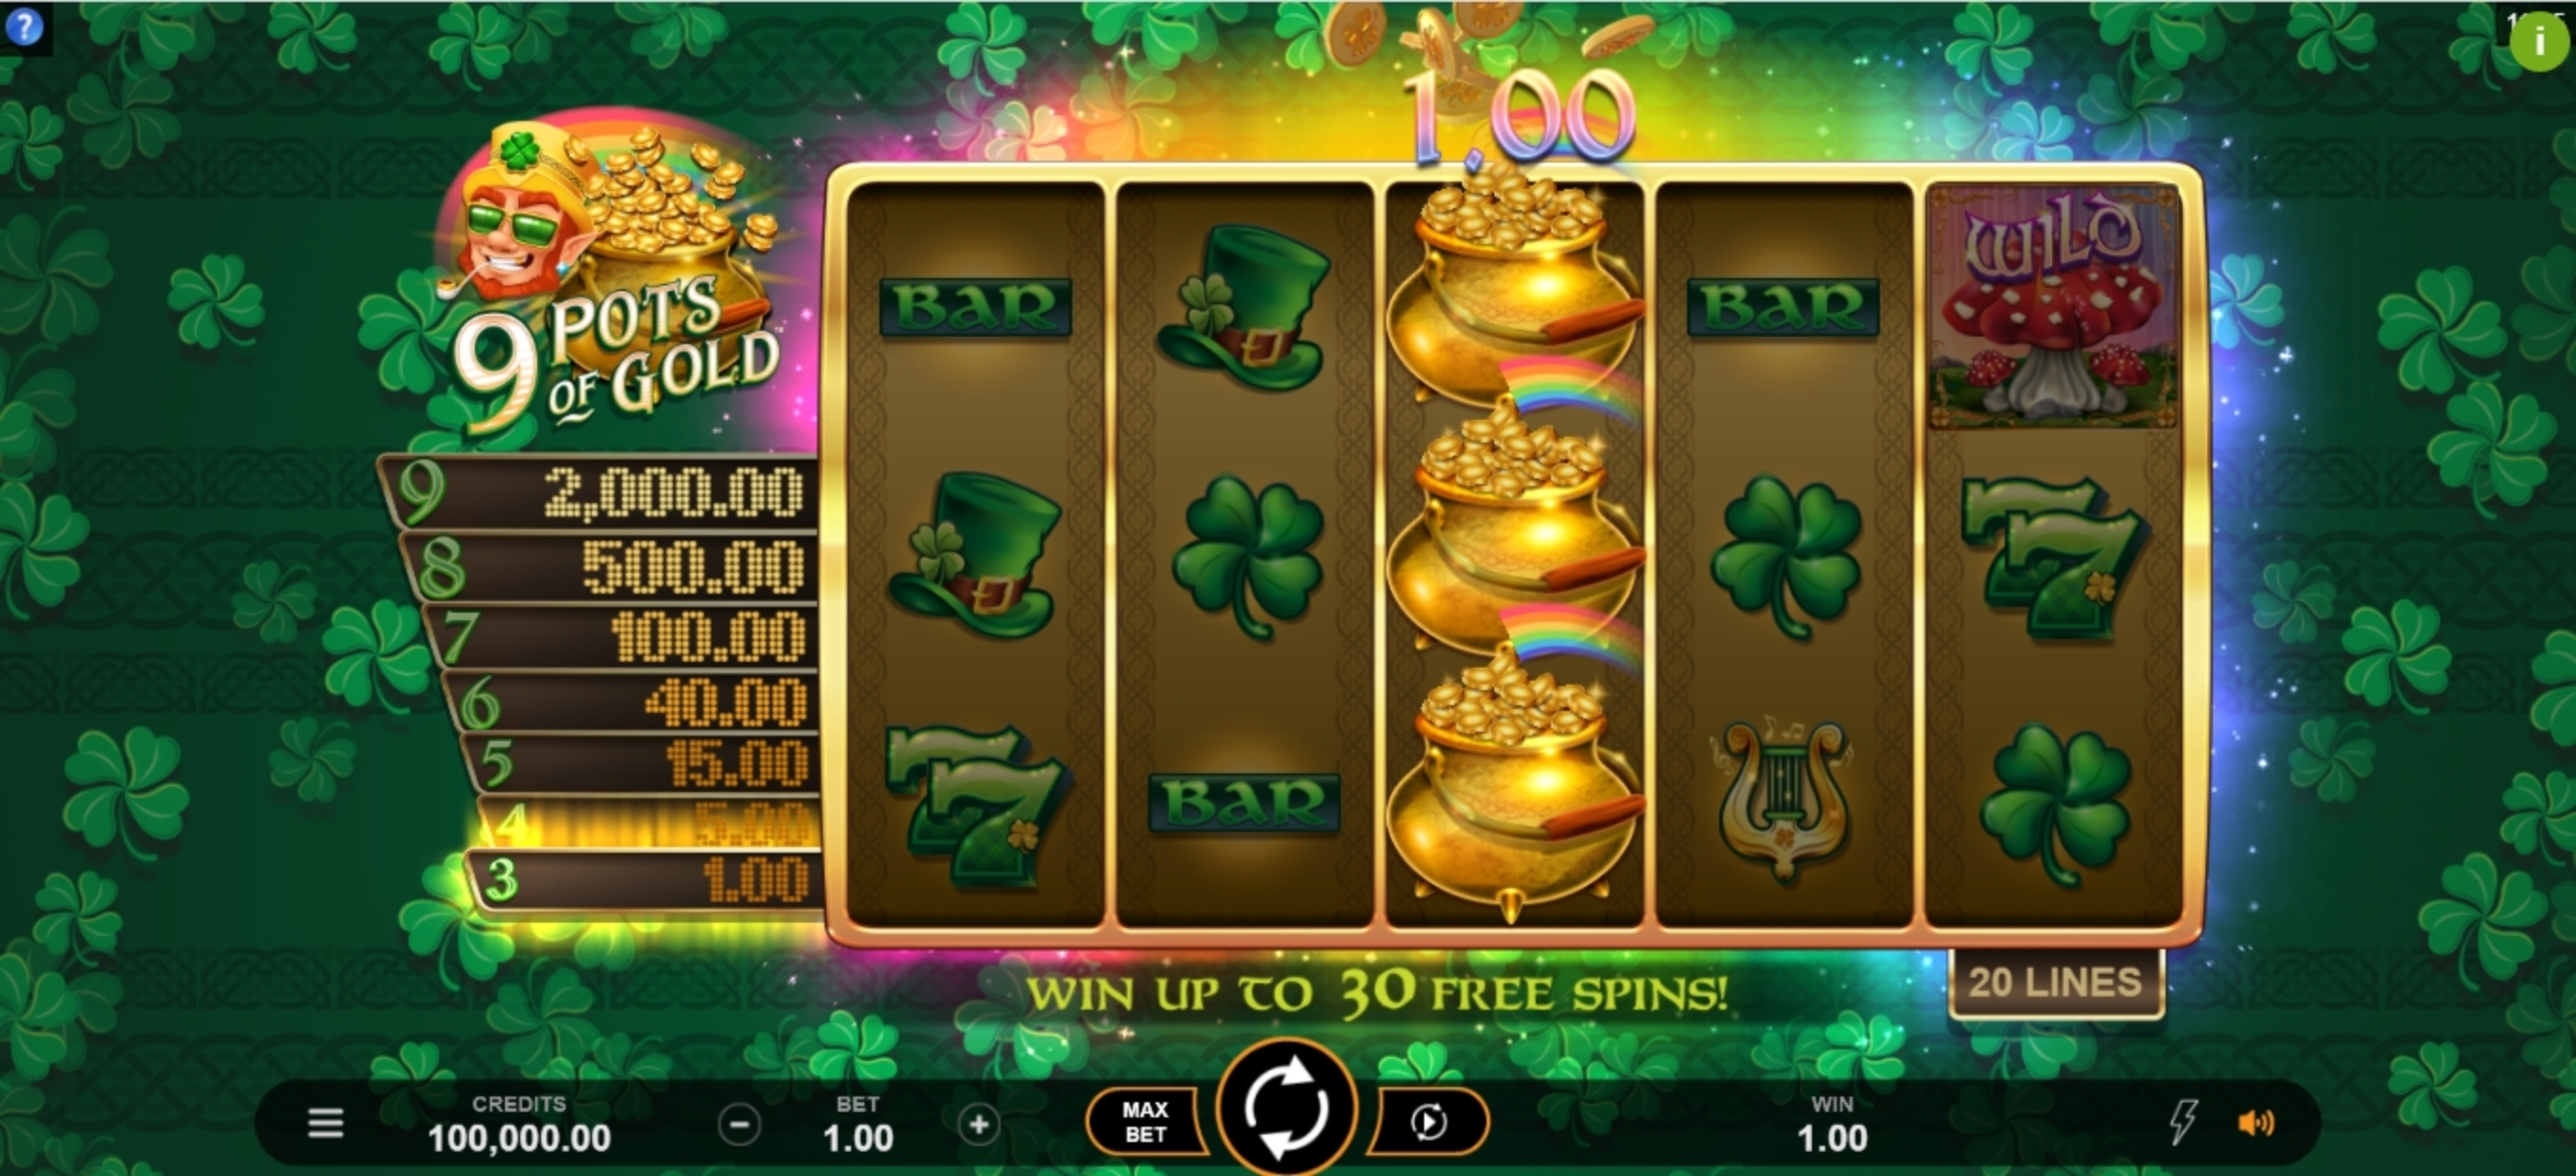 Win Money in 9 Pots of Gold Free Slot Game by Gameburger Studios